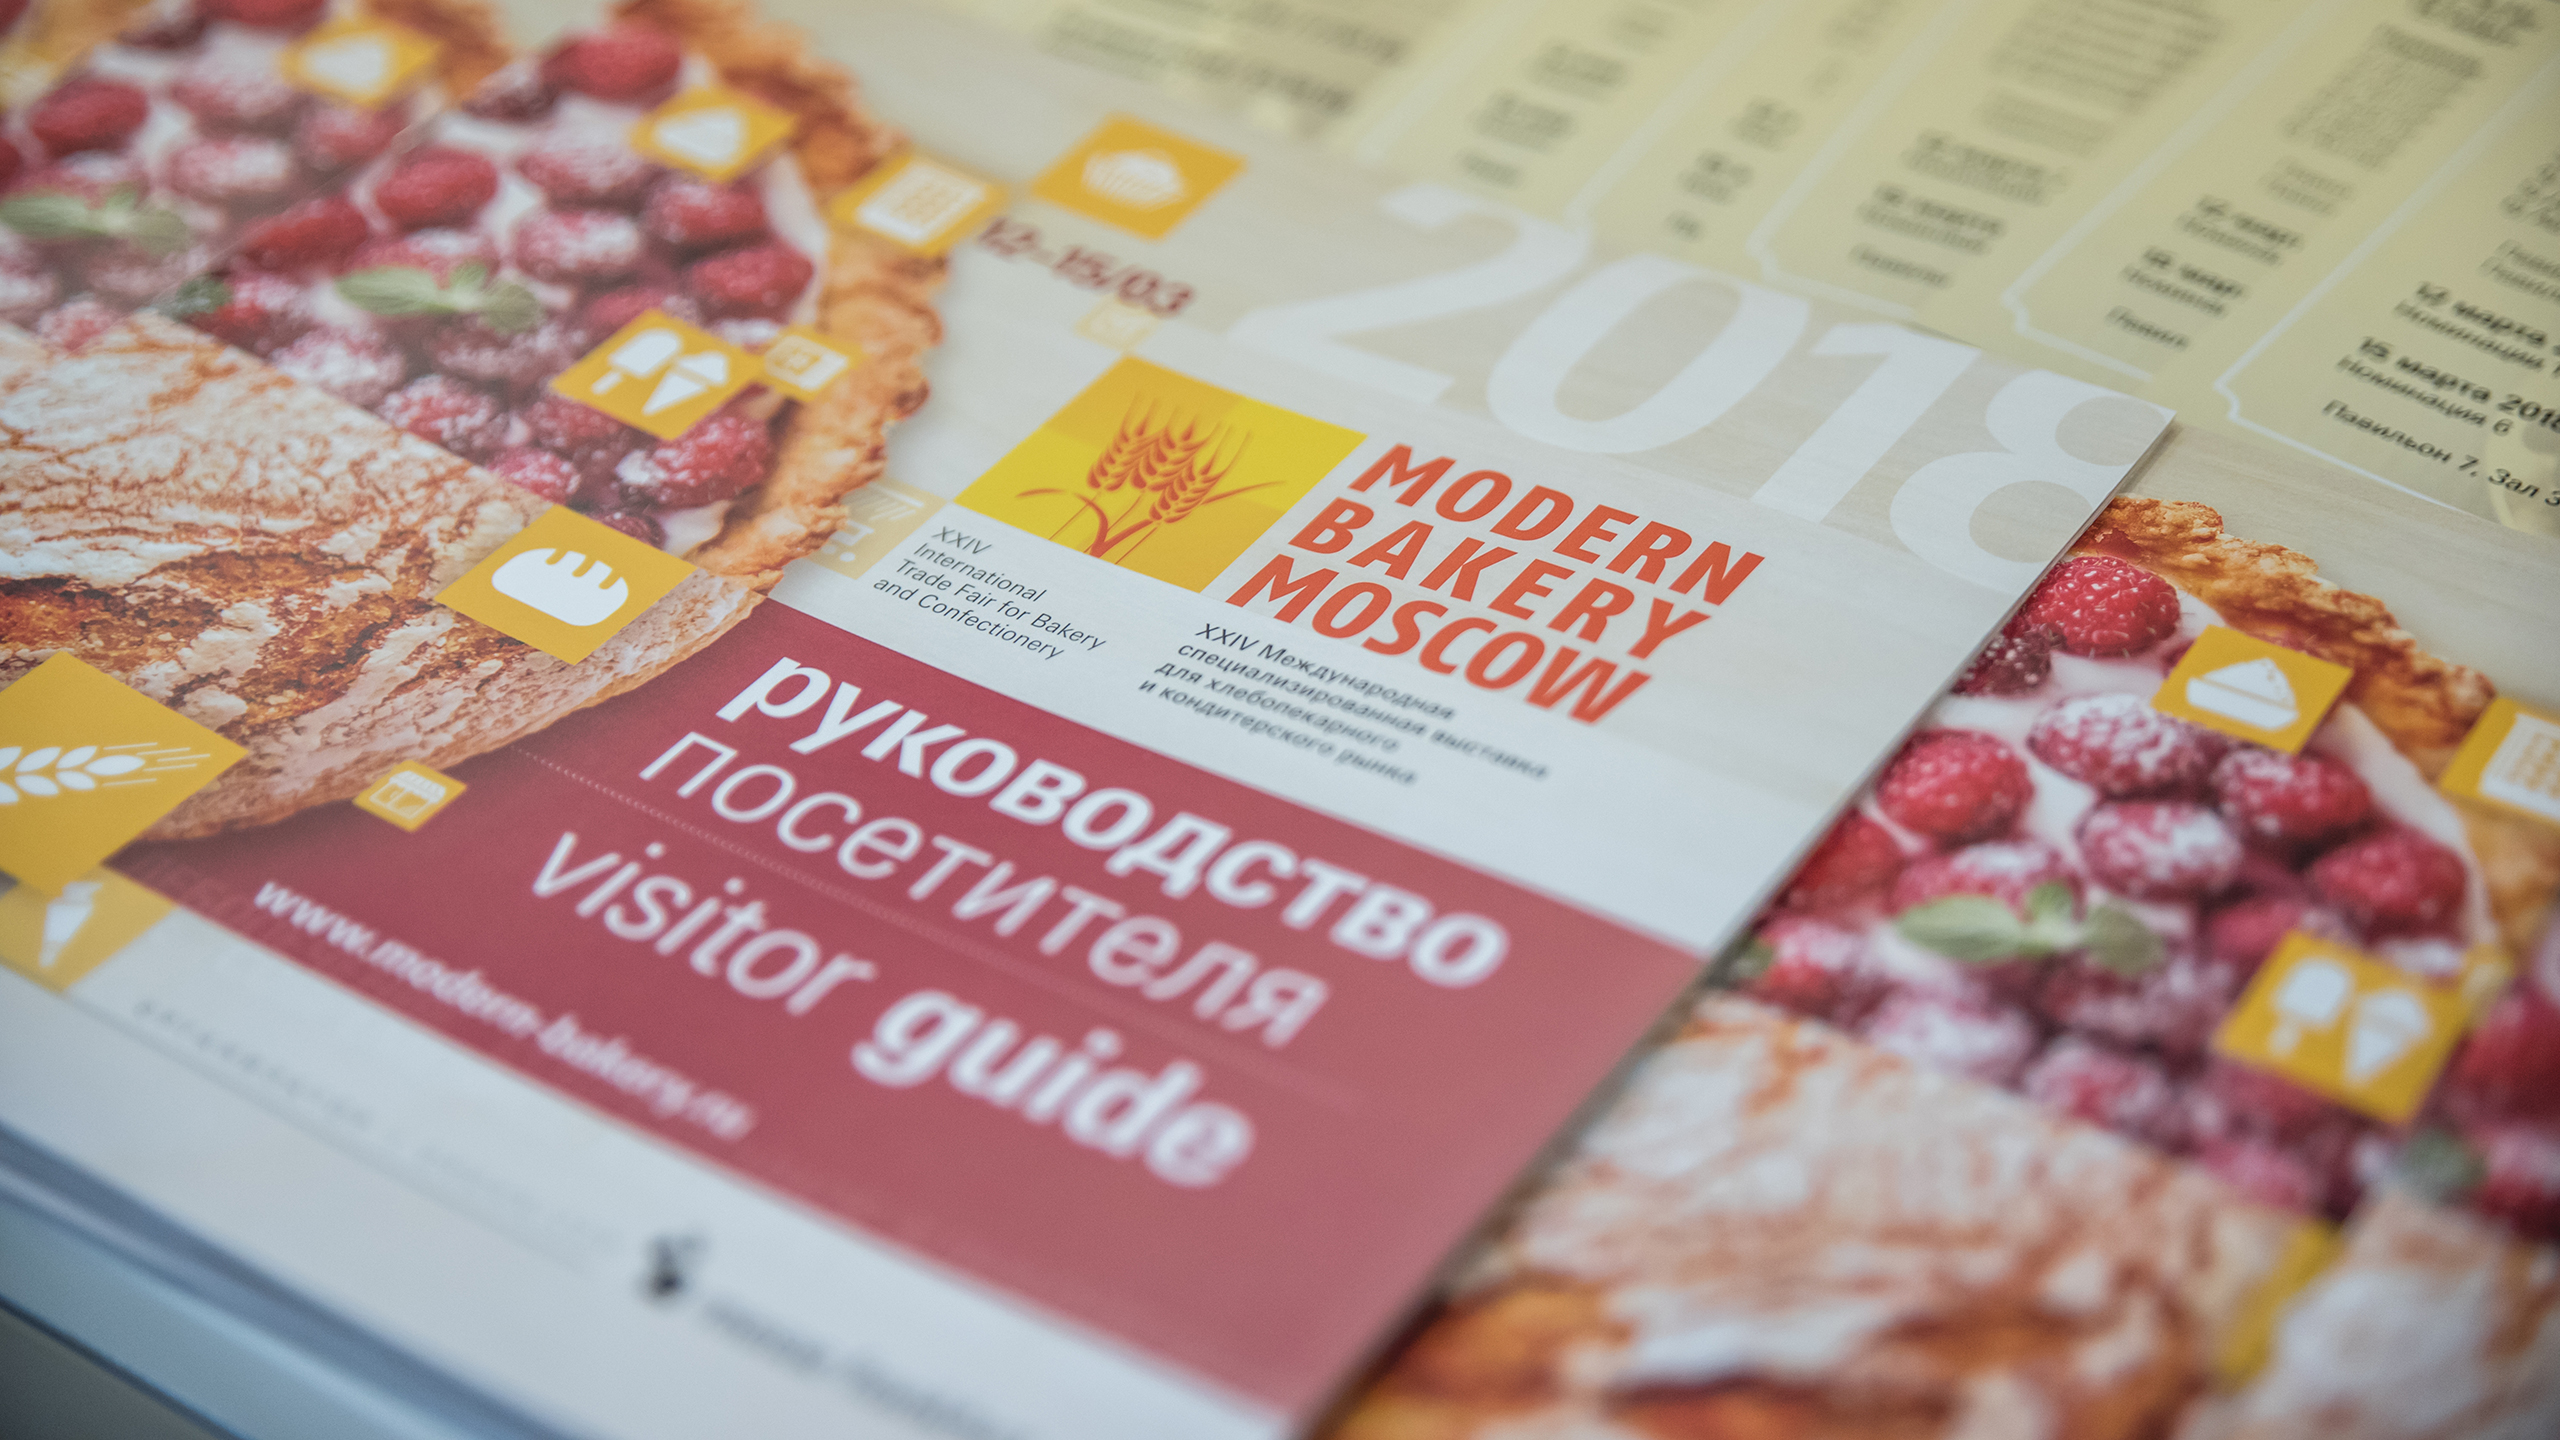 Flyer Modern Bakery Moscow